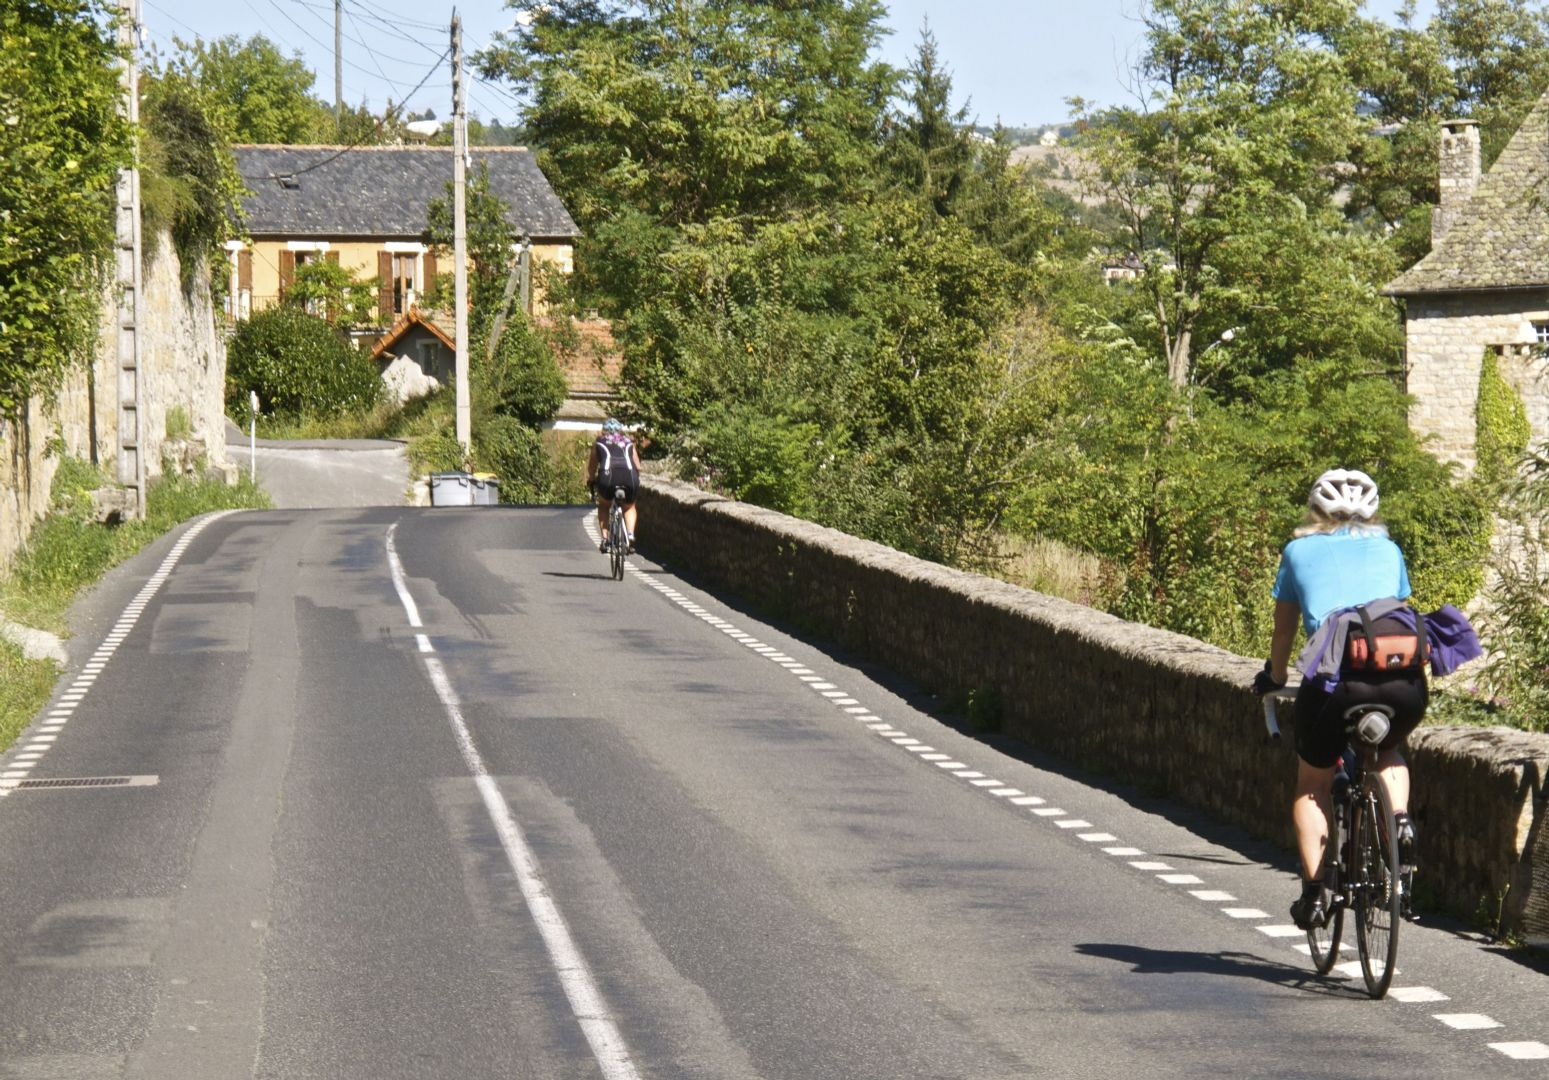 leisurecyclingfrance2.jpg - France - Dordogne Delights - Self-Guided Leisure Cycling Holiday - Leisure Cycling